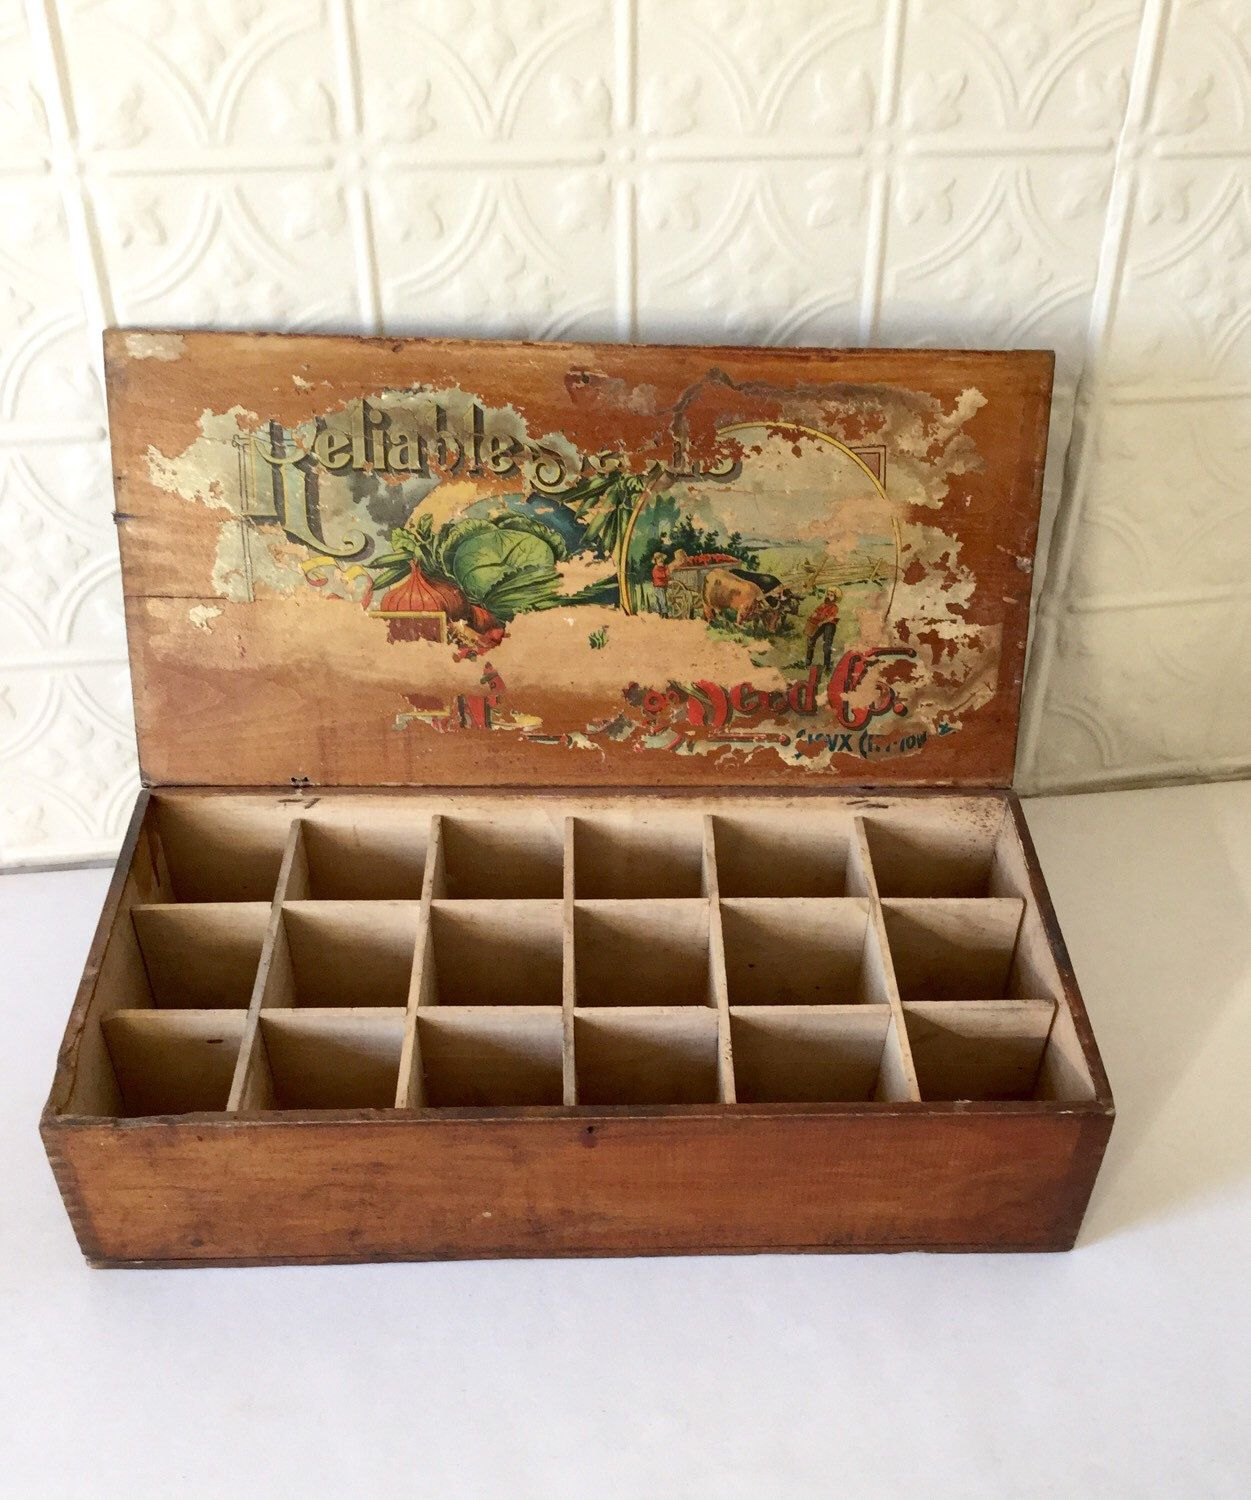 Antique Seed Box Sioux City Iowa Divided Wood Store Display by ...